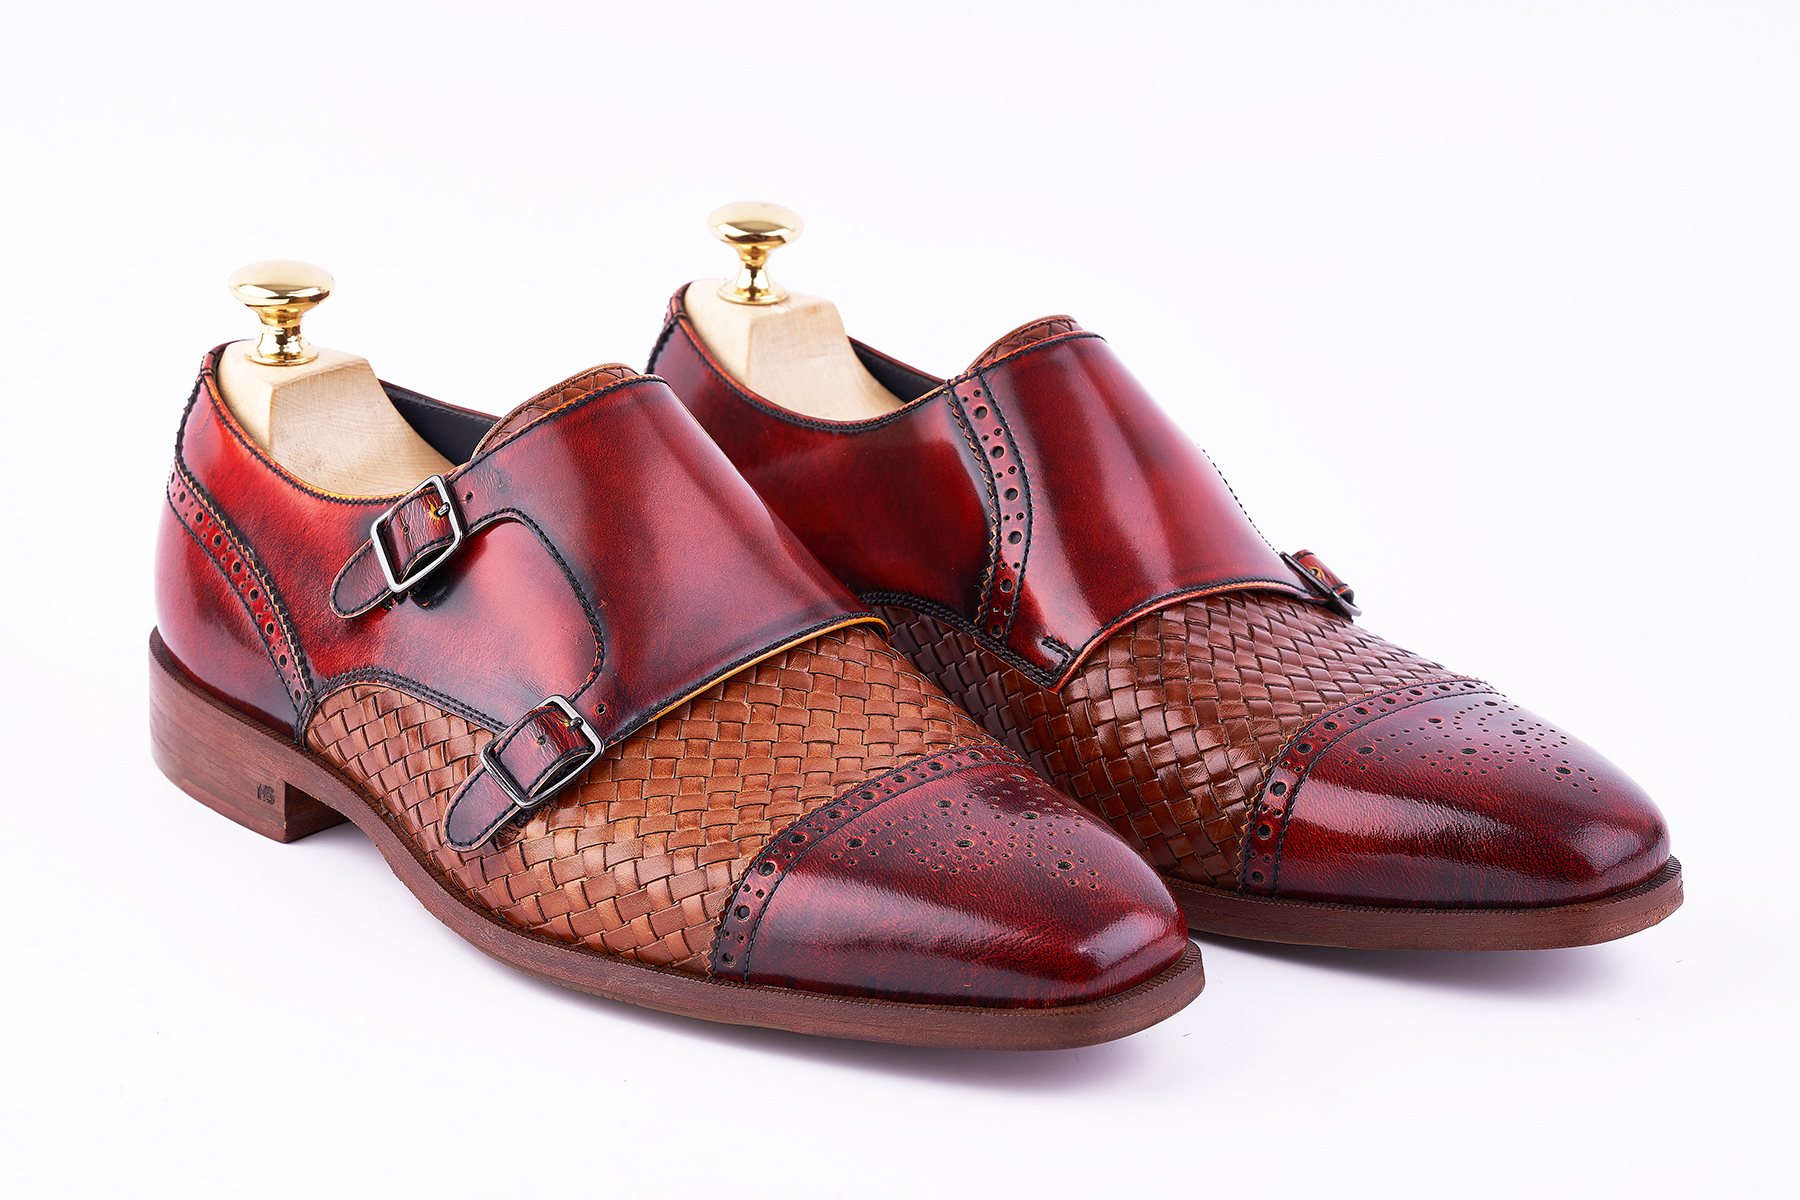 Leather Shoes 101: Unfolding The Good, The Great, And The Awesome